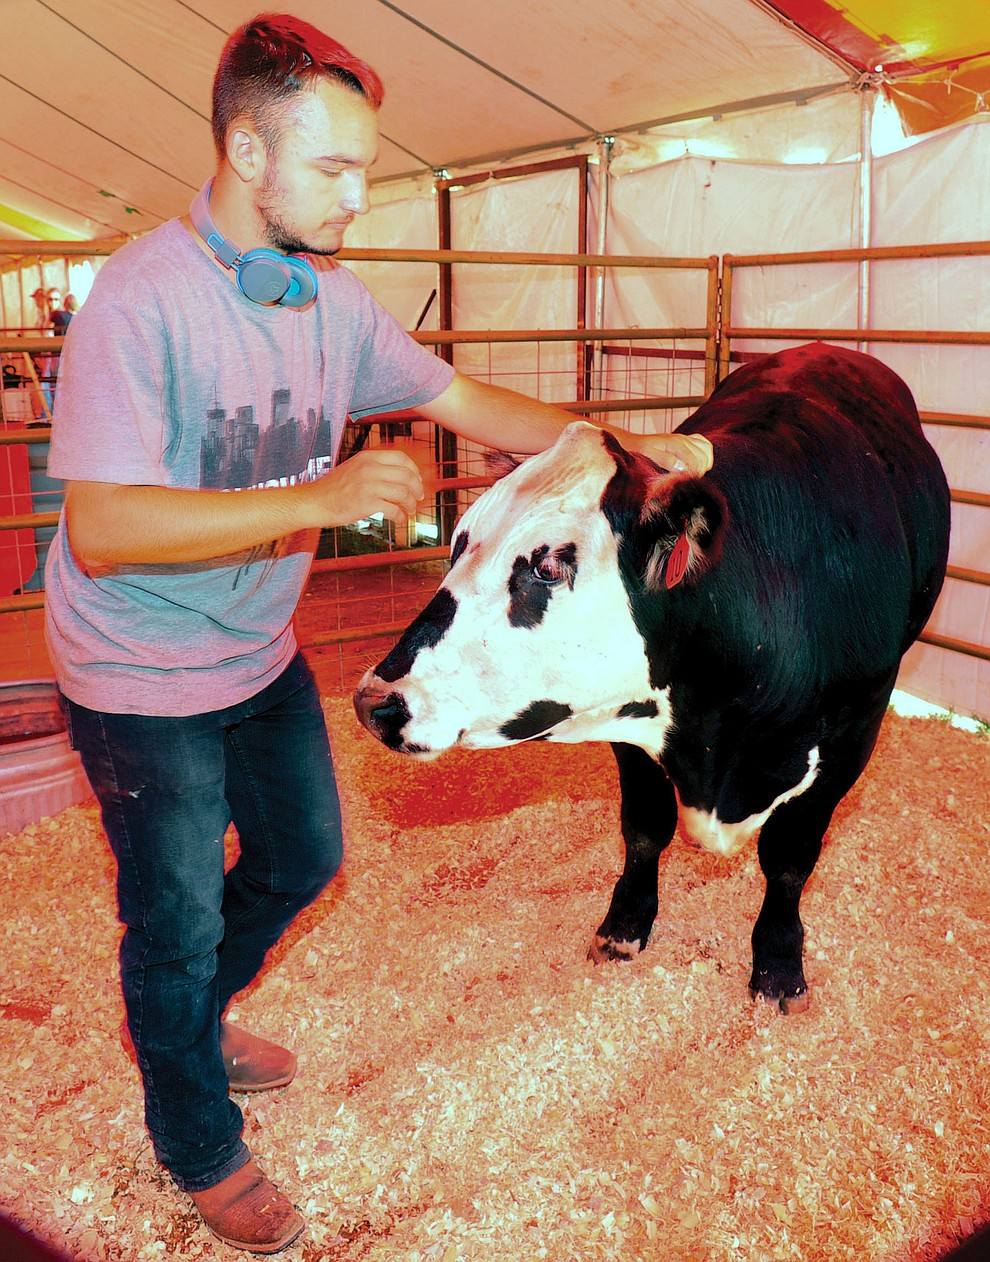 Northern Division Livestock Club's Konnol Montoya gets his market beef ready for auction at the 69th annual Yavapai County 4-H/FFA Expo Show and Auction Saturday, August 25, 2018 at the Prescott Rodeo Grounds. (Les Stukenberg/Courier)